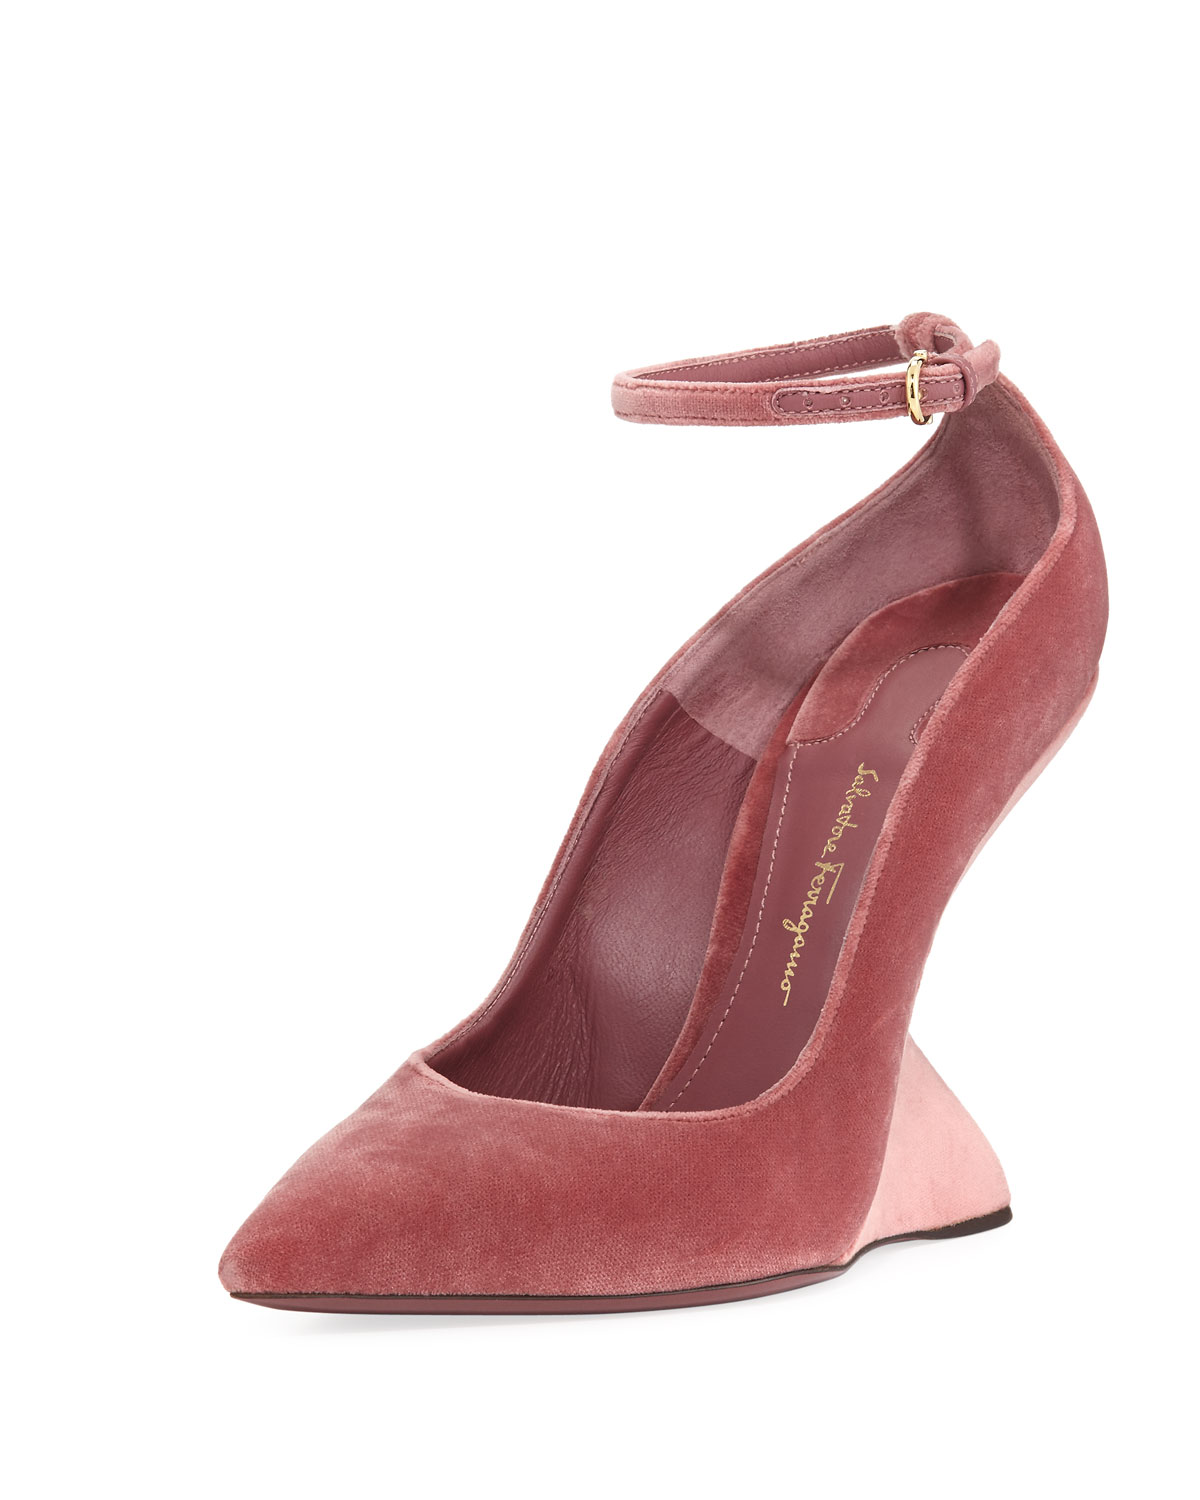 free shipping purchase discount codes shopping online Salvatore Ferragamo Pointed-Toe Wedge Pumps discount low shipping fee outlet reliable GAFZB5vY3